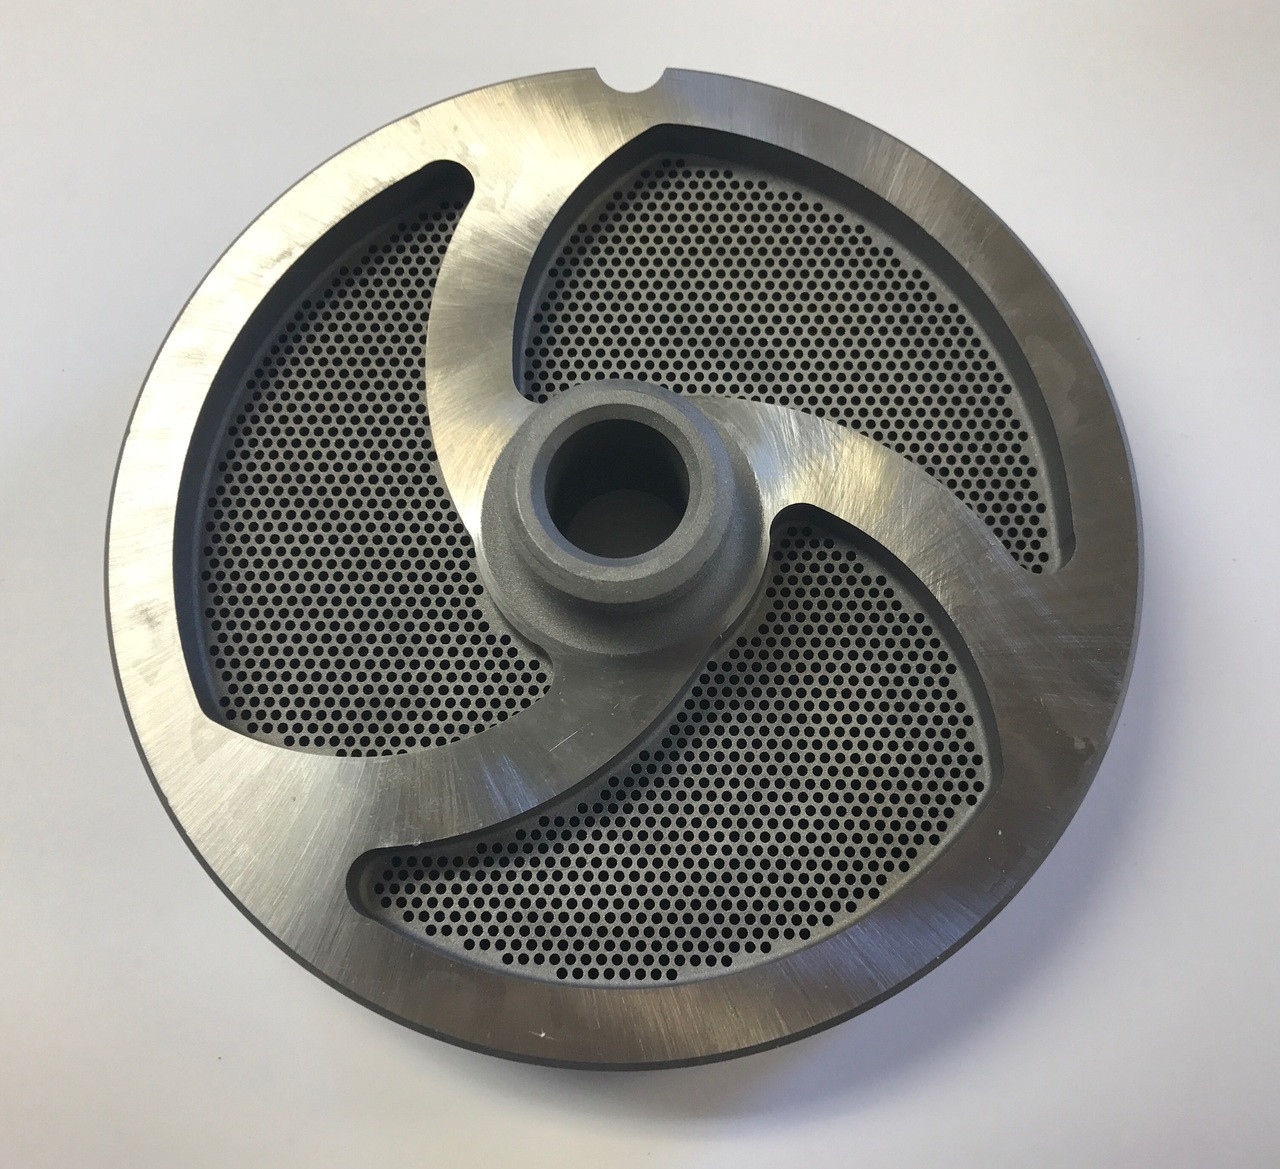 "#56 Speco Meat Grinder Plate with 1/16'' Holes - ""Hub Plate"""